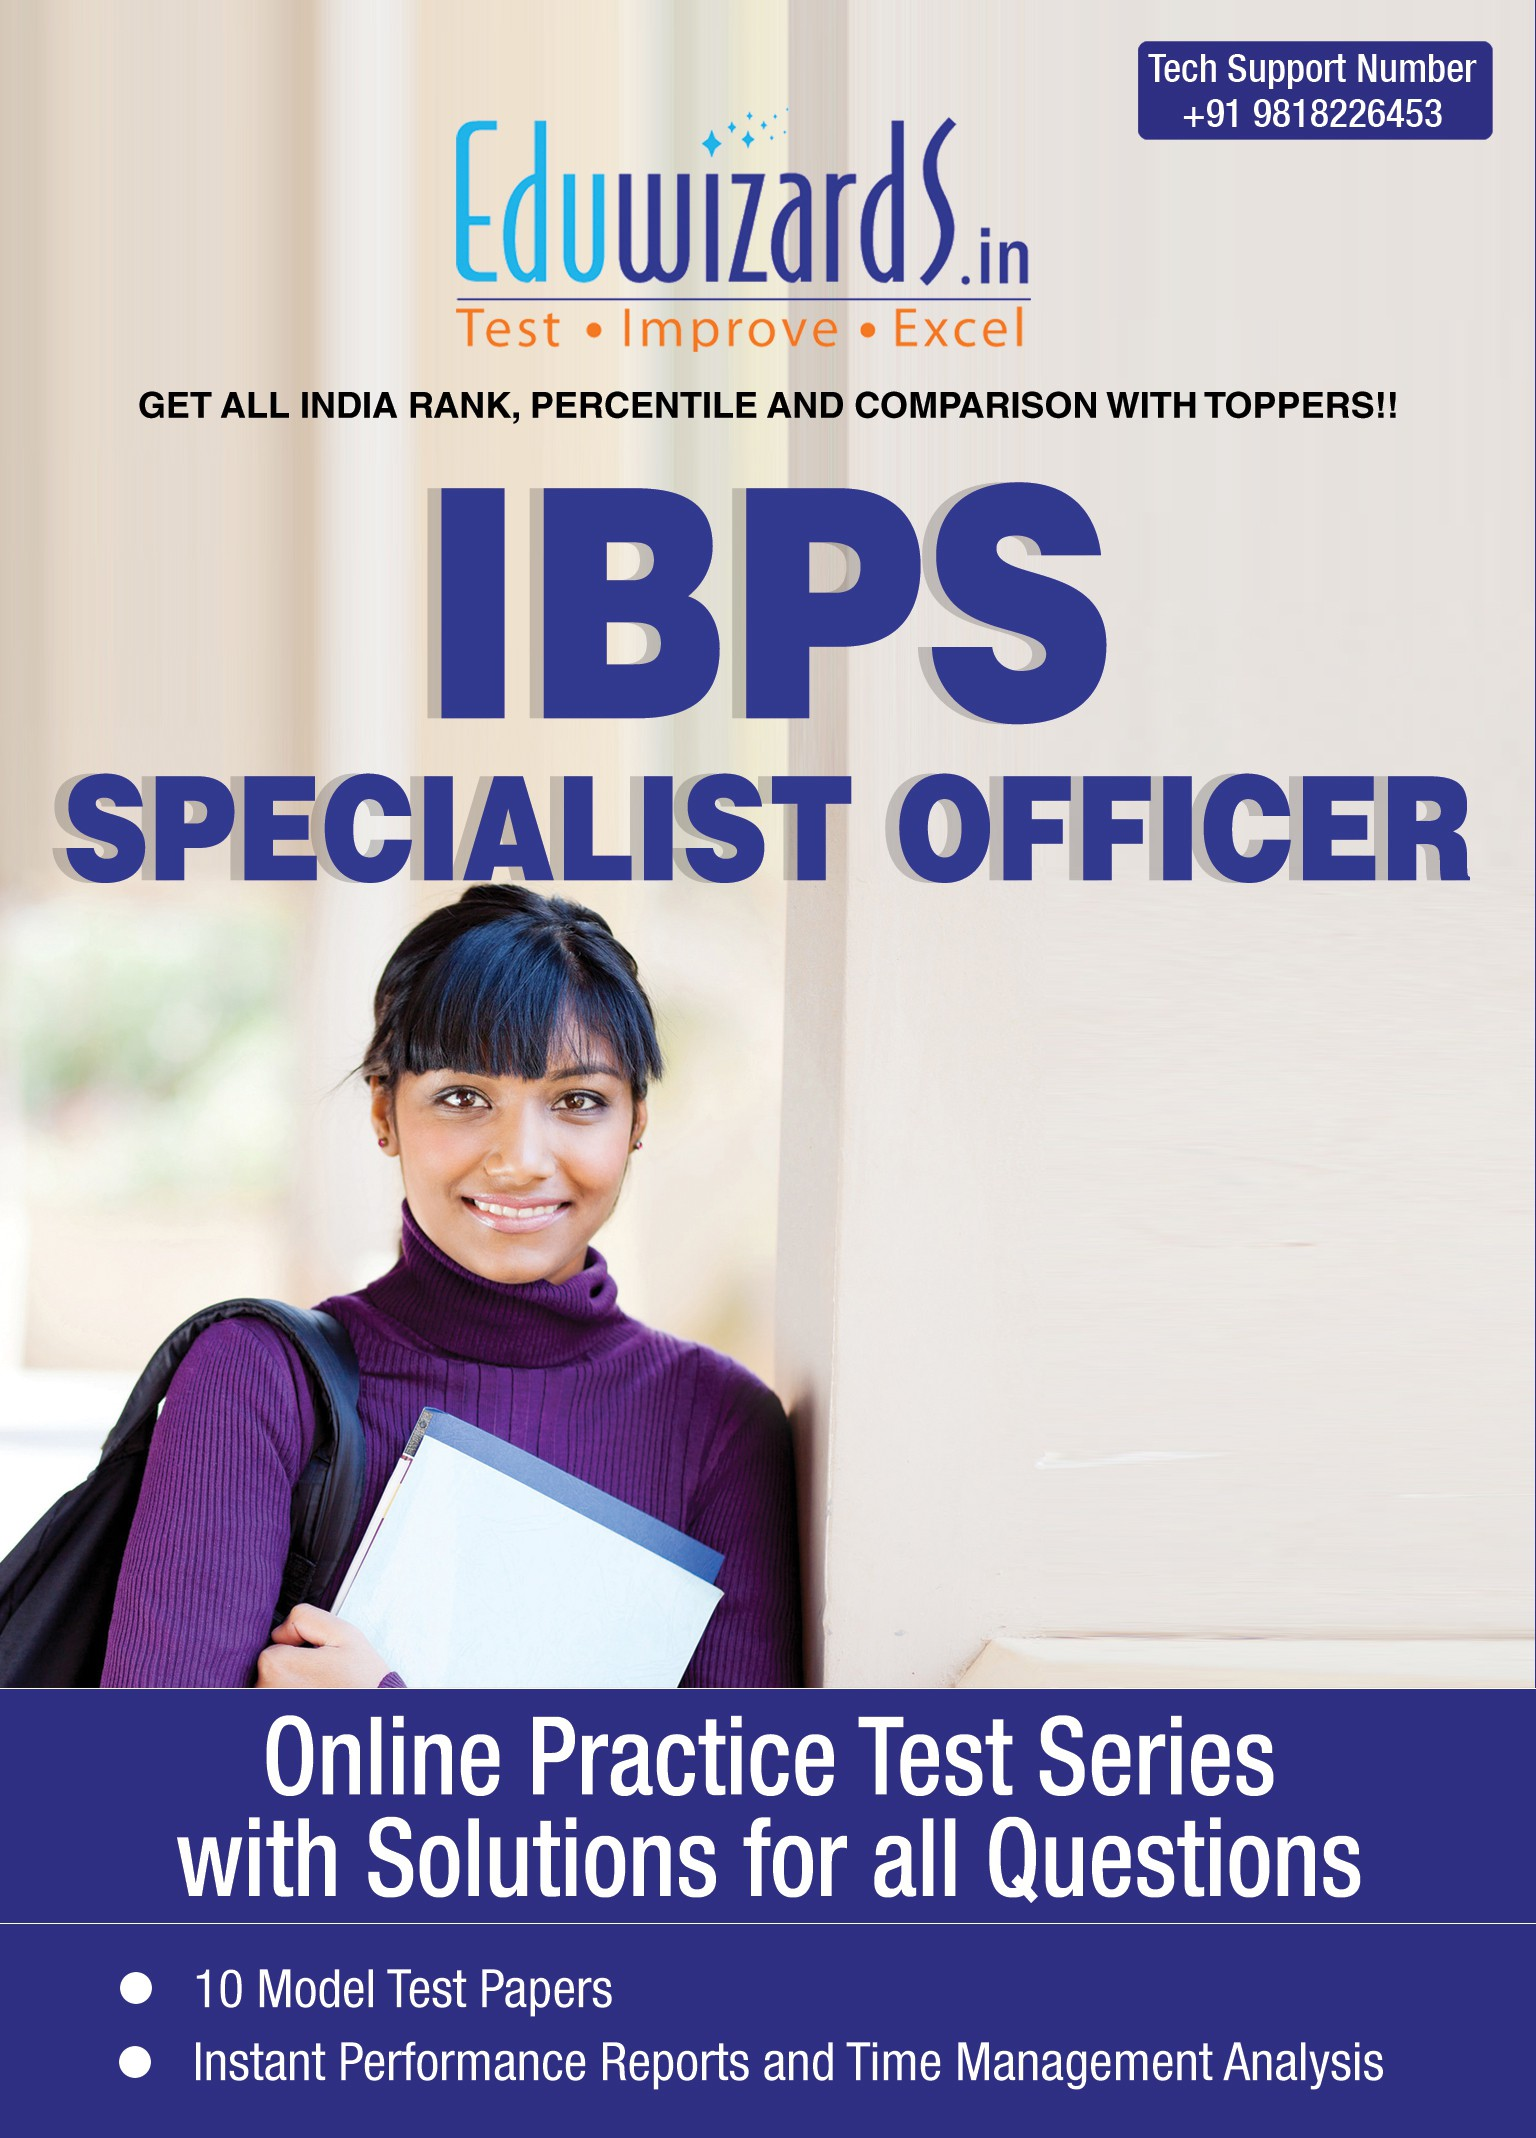 Eduwizards IBPS Specialist Officer Online Test Series Online Test(Voucher)